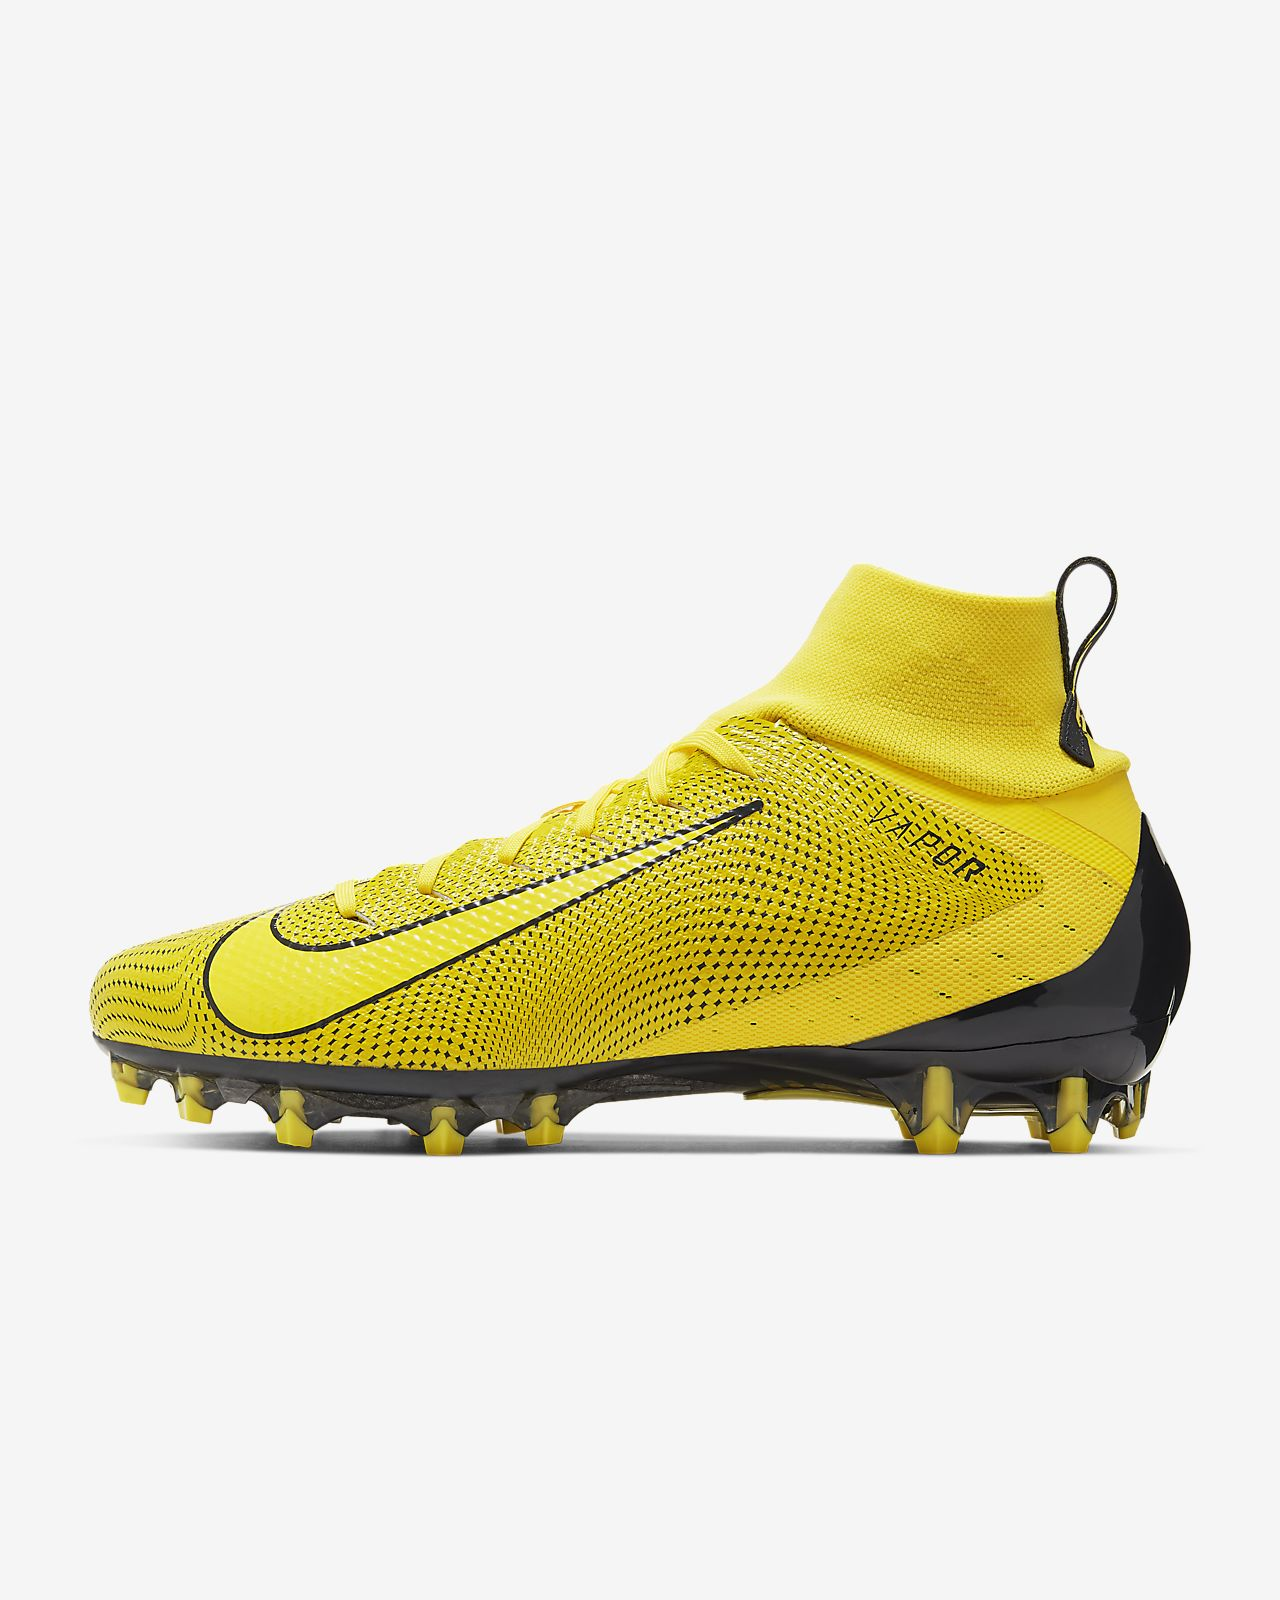 d39745205c38 Nike Vapor Untouchable 3 Pro Football Cleat. Nike.com